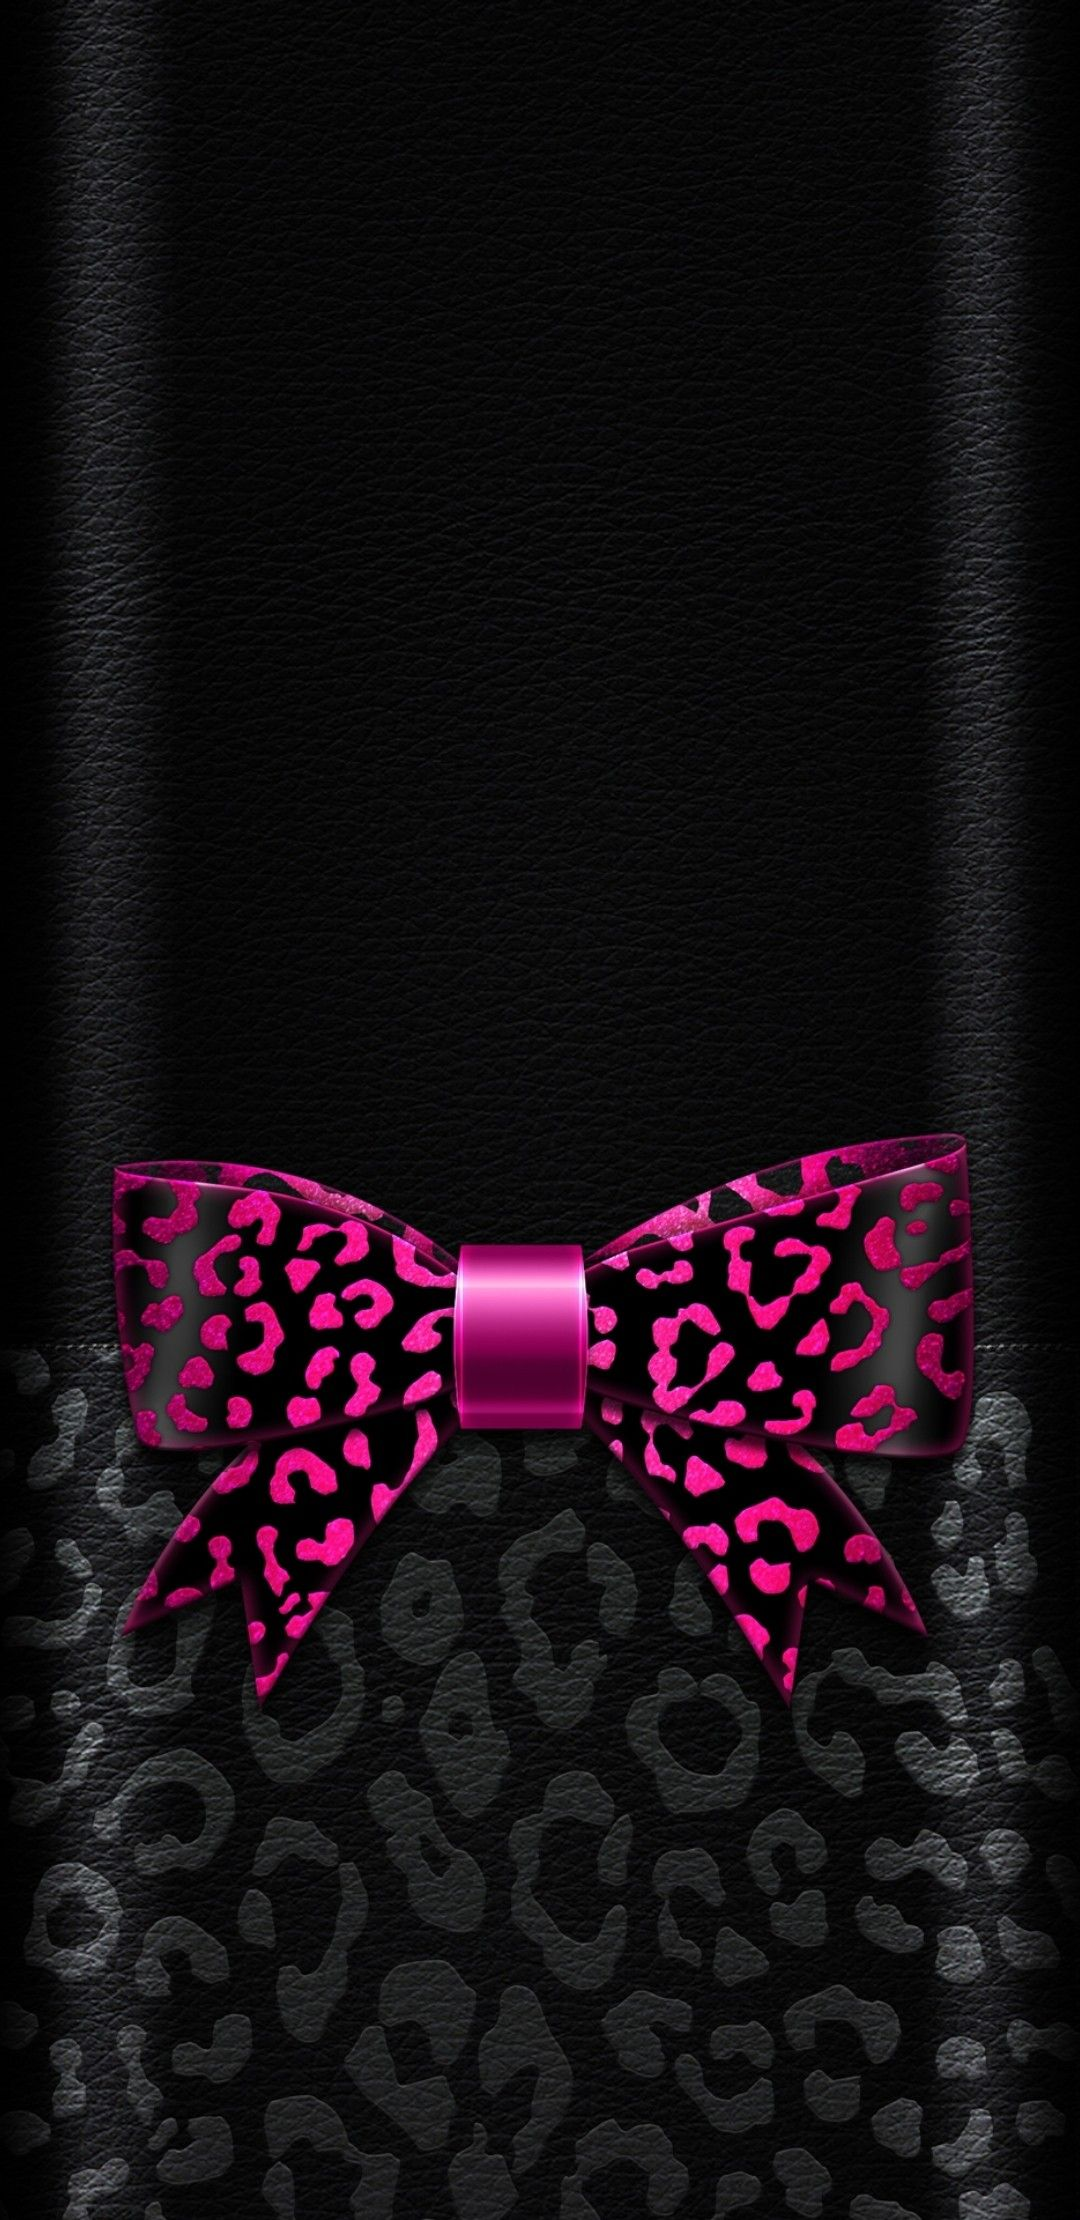 Black And Pink Bow Wallpaper Cute Girly Bow Wallpaper Iphone Bow Wallpaper Cellphone Wallpaper Cute dark girly iphone wallpaper